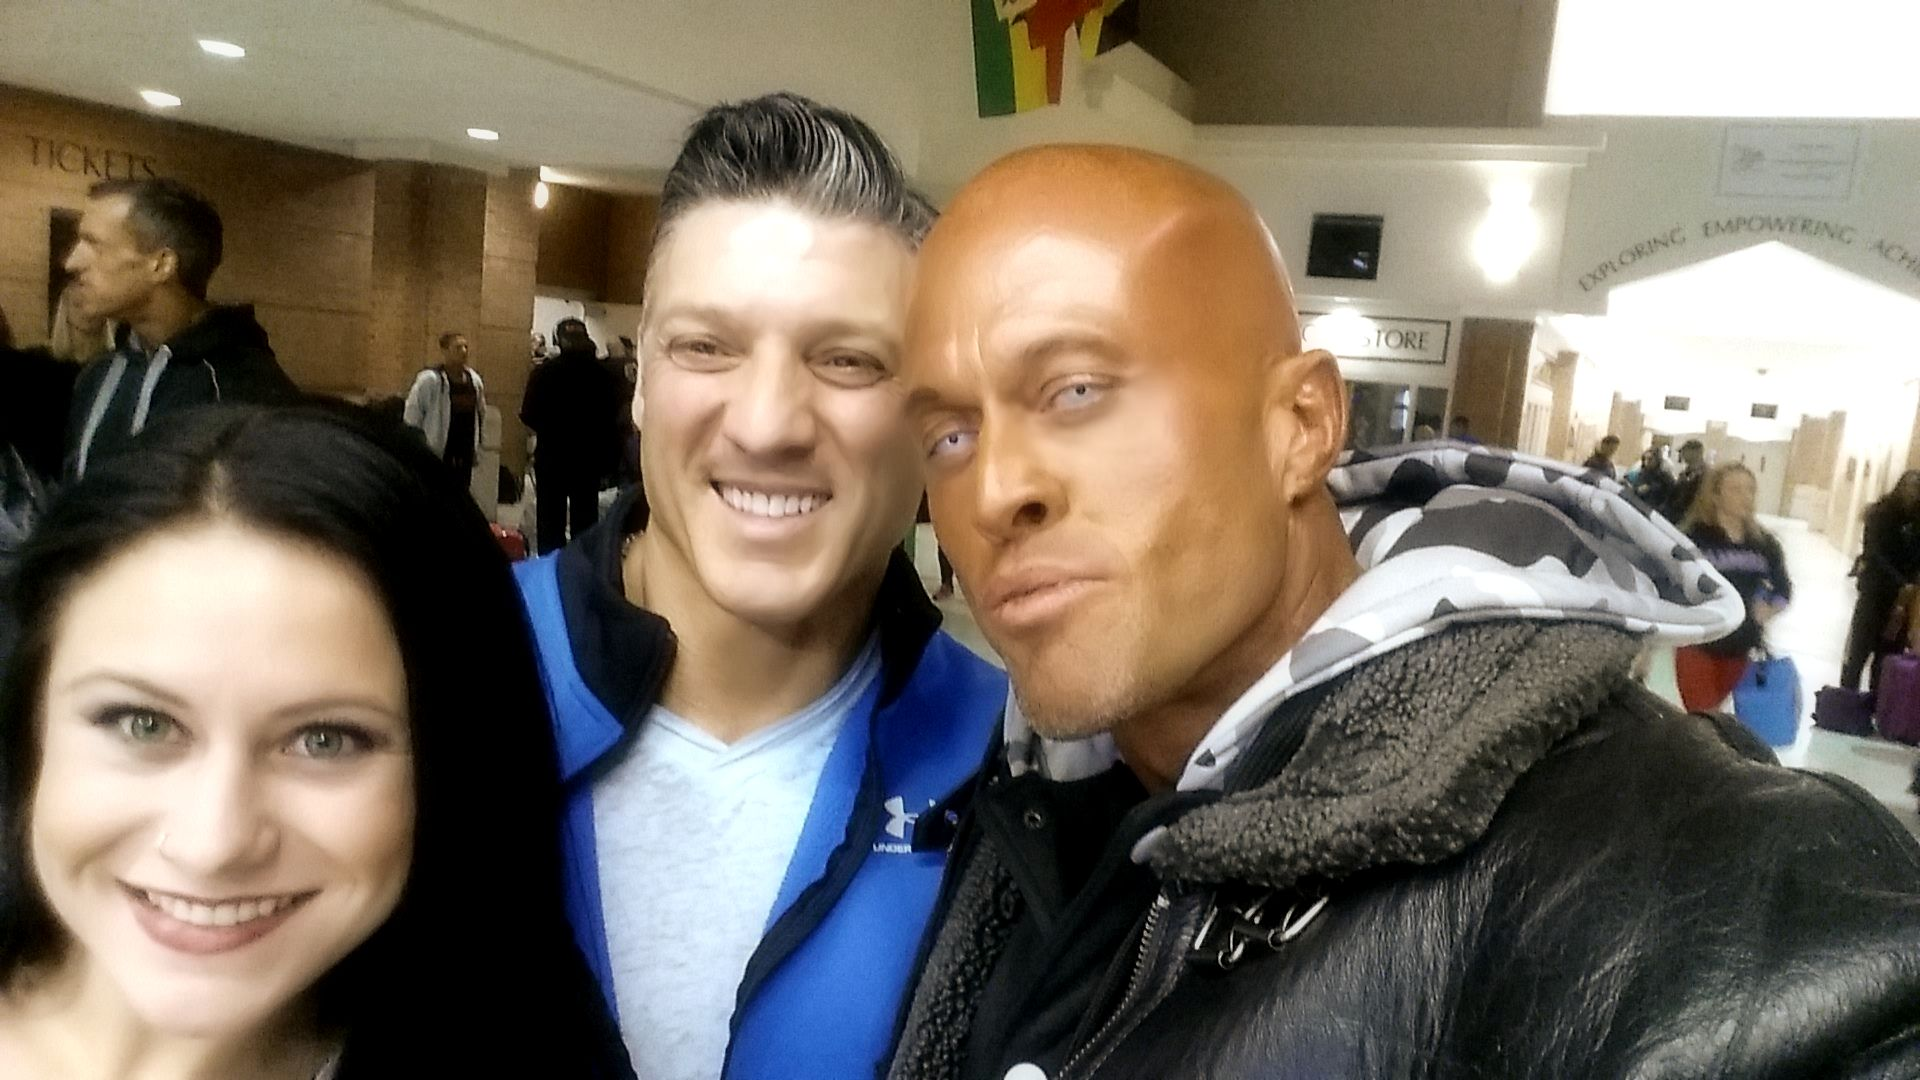 Michael Anderson & John Joseph Quinlan @ 2015 NPC Montanari Bros Powerhouse Classic in New Haven, CT. #JohnQuinlan